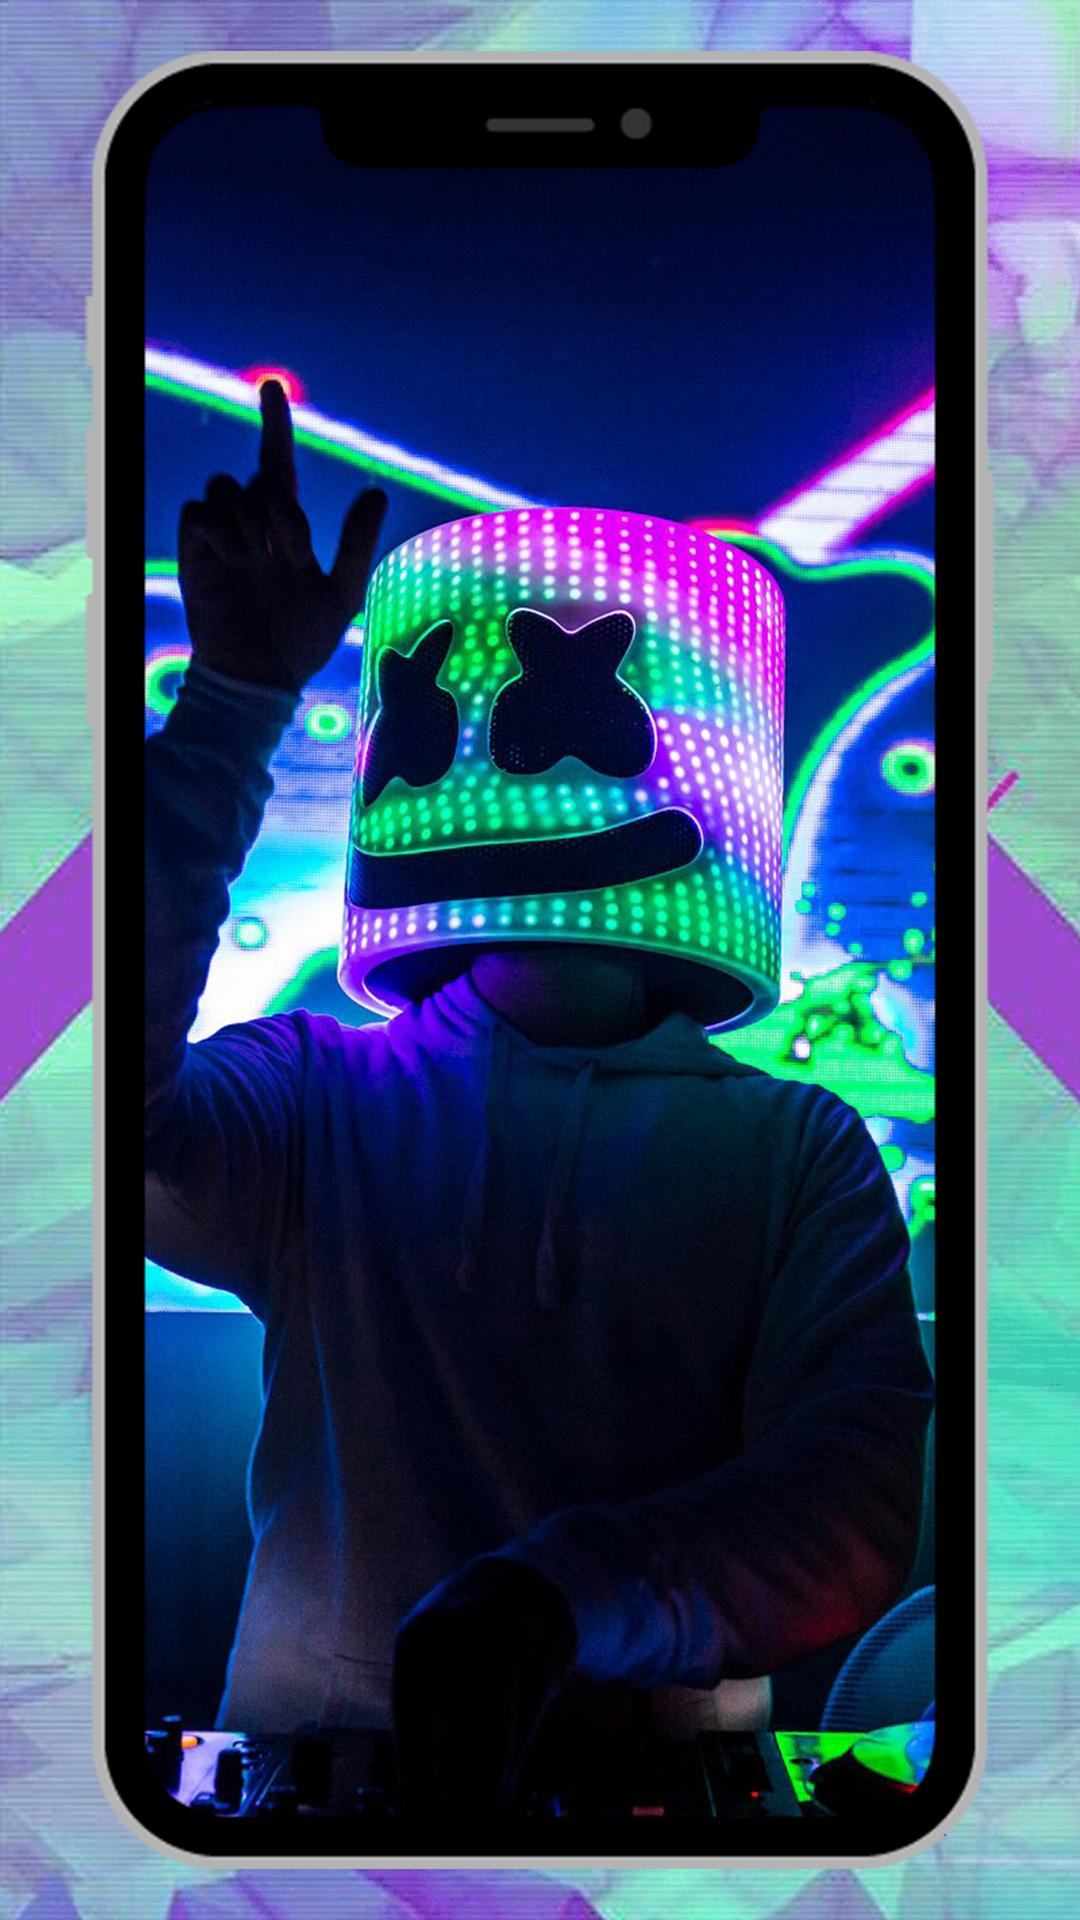 Marshmello Live Wallpapers Hd 4k 2018 For Android Apk Download